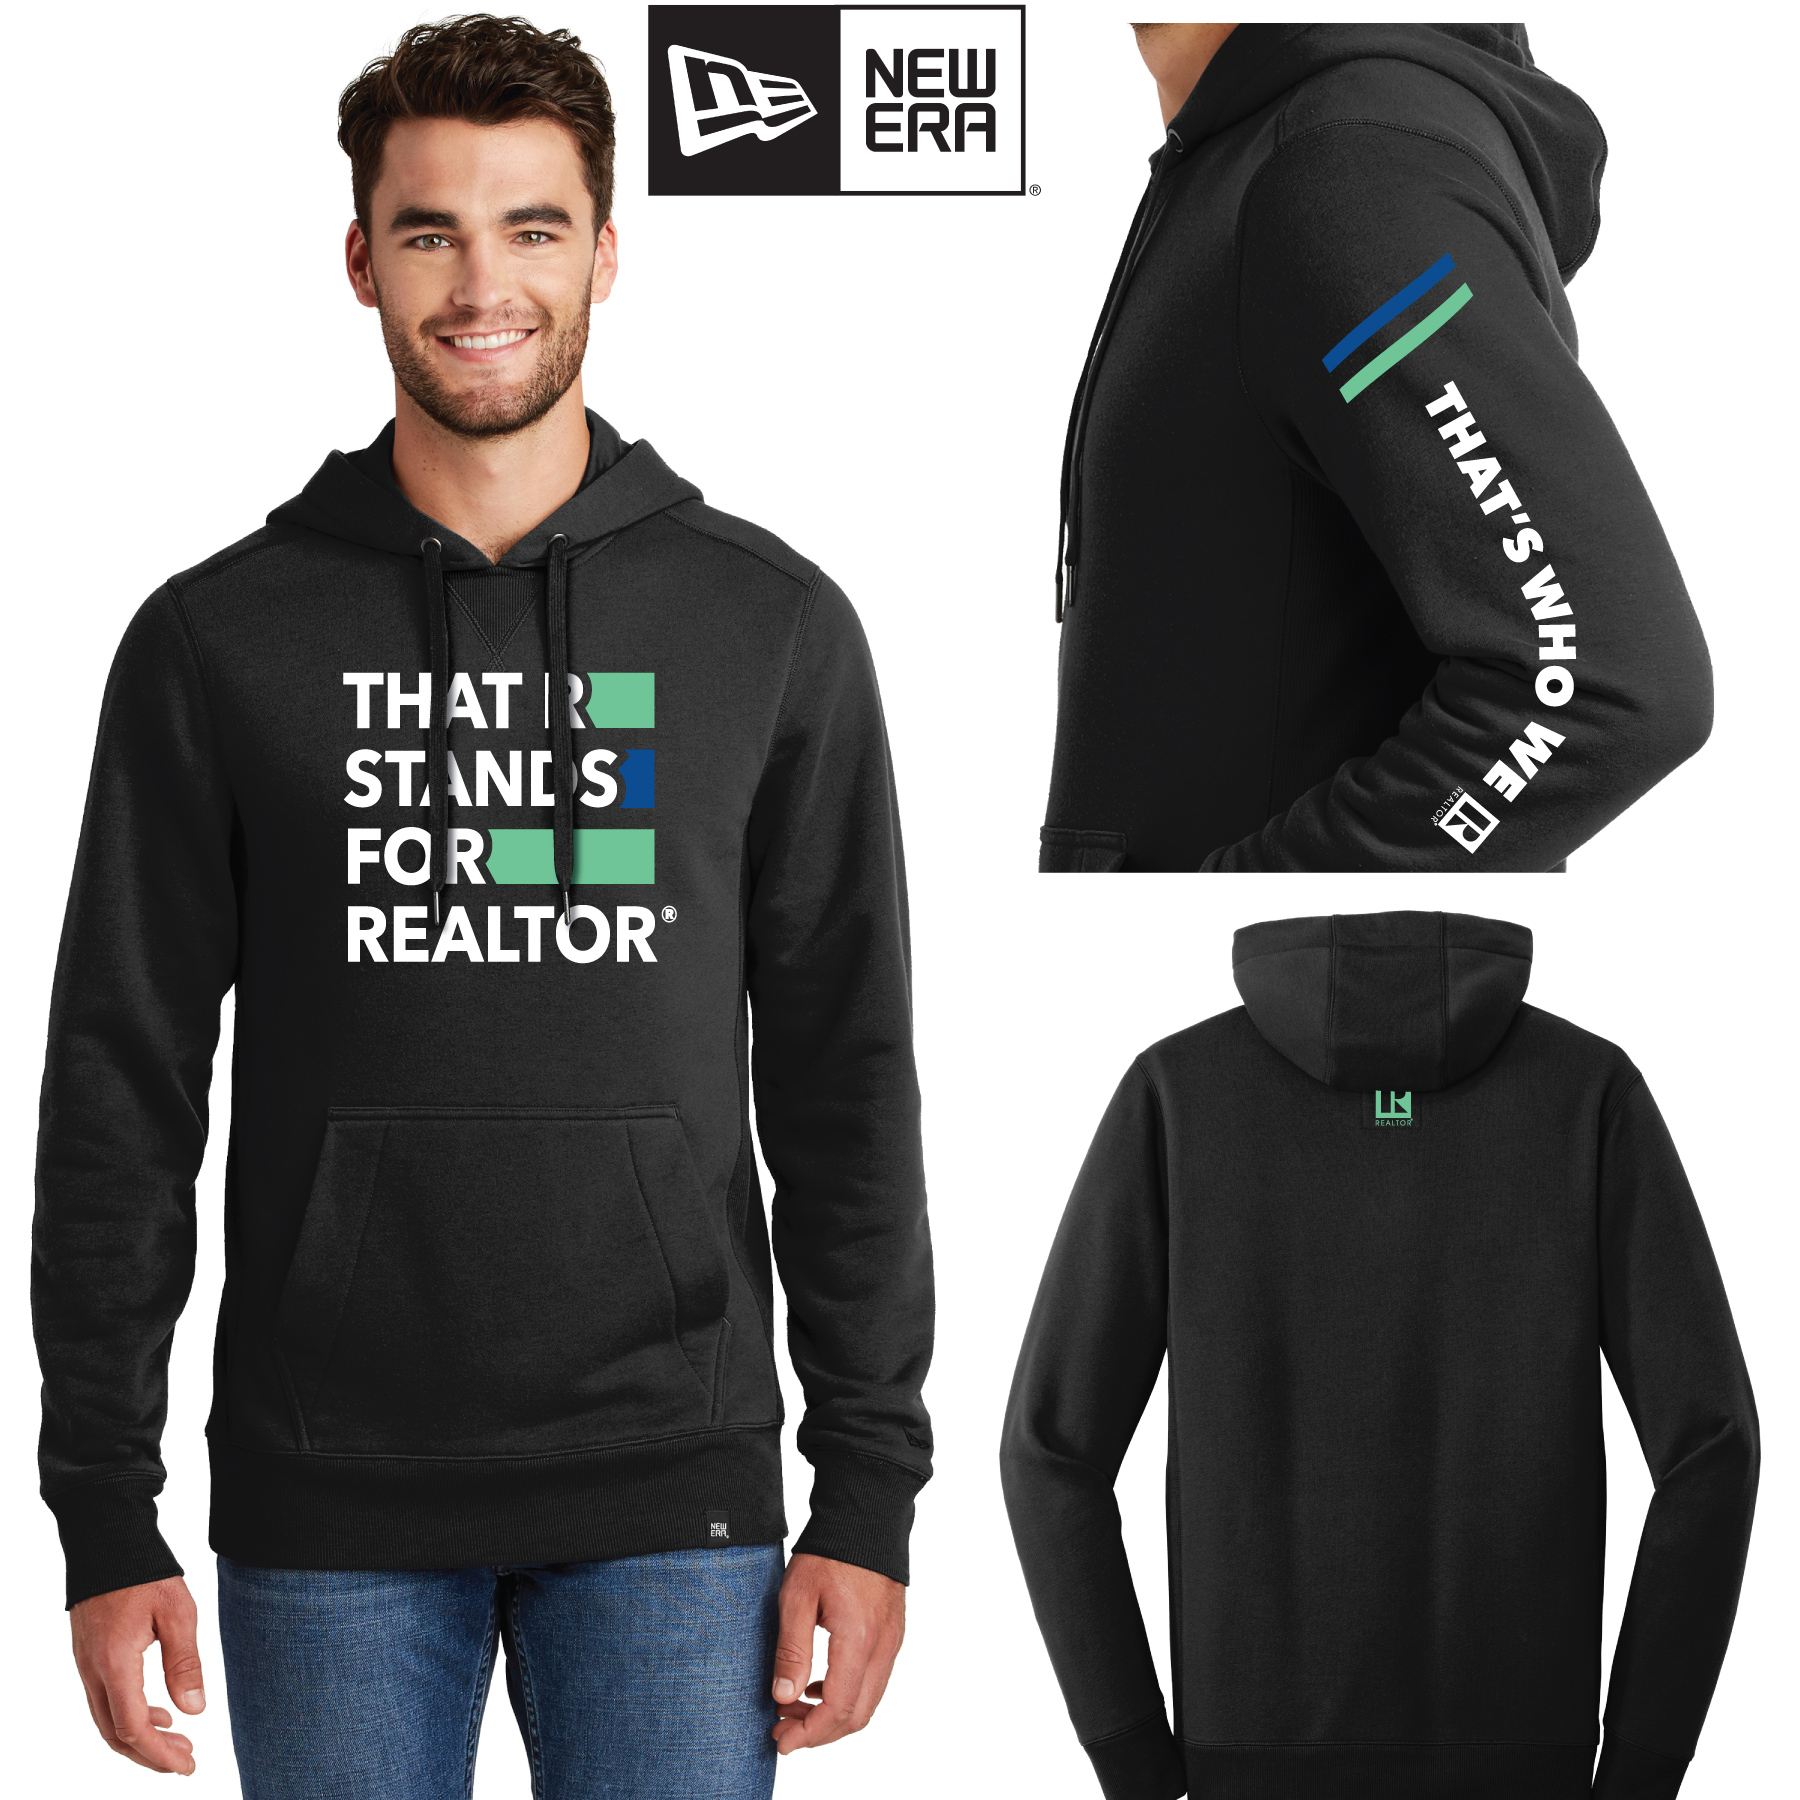 """That R Stands for REALTOR®"" New Era® French Terry Hoodie Sweatshirt twwr,ThatsWhoWeR,Thats,TWWR,ThatWho,ThatsWho,Twwr,Thats,Whos,We,Ares,Hoodies,TWWR,Hoods,Sweats,Shirts,Sweatshirts,Necks"